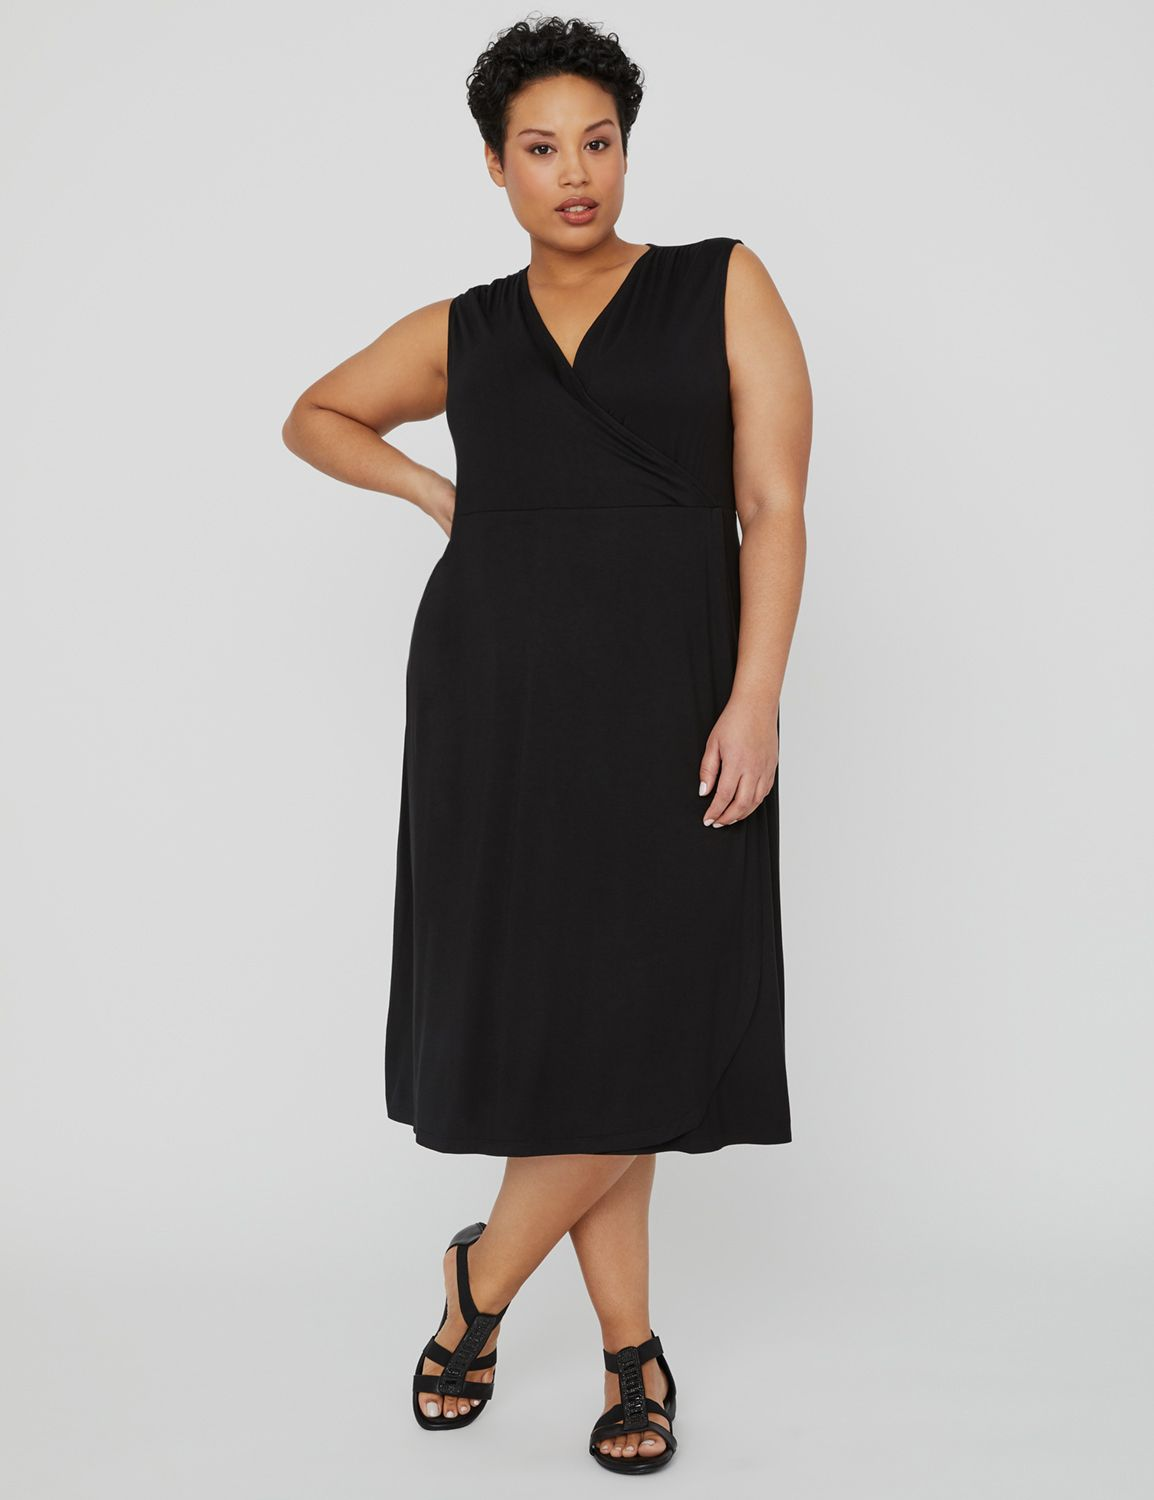 Riverview Wrap Dress 1088151 Vneck Front and Back Maxi E MP-300102353